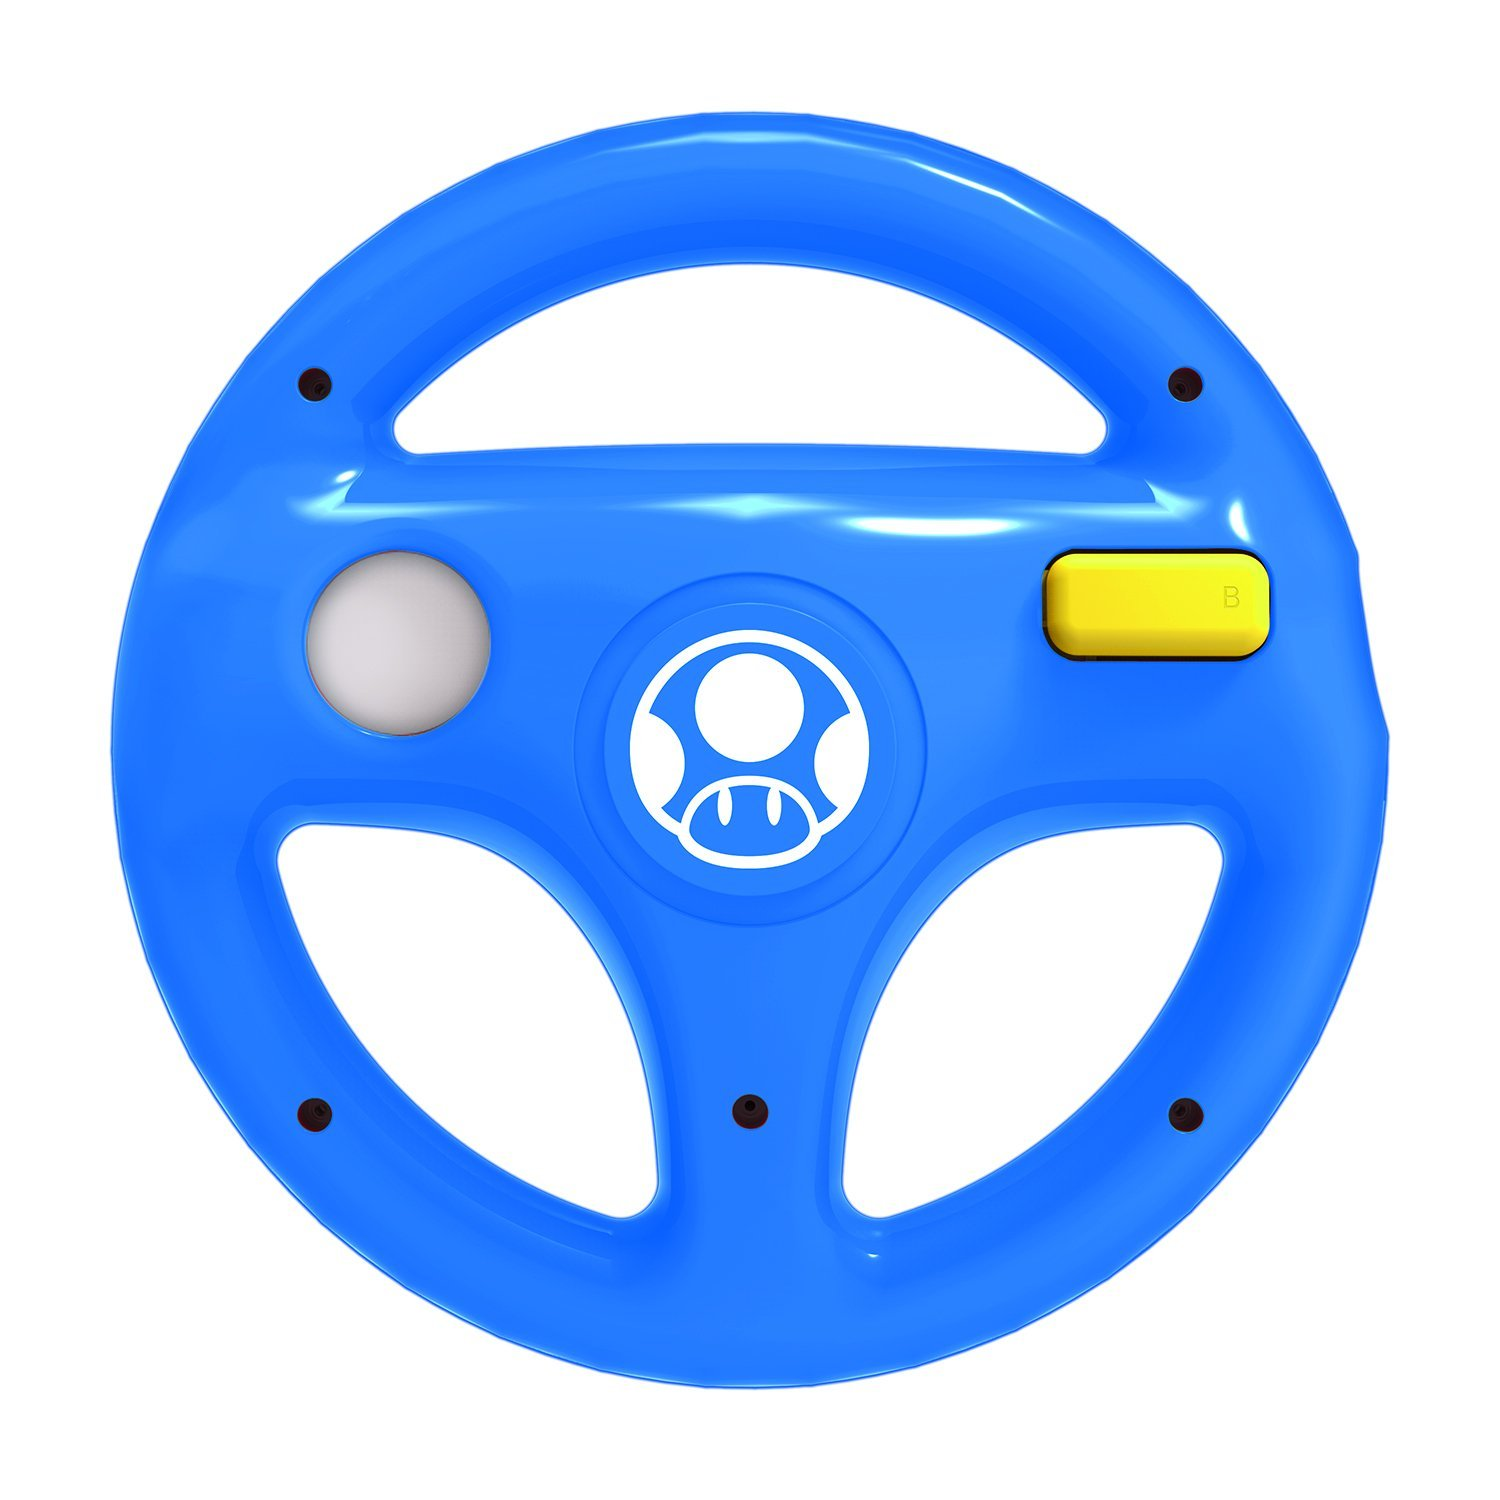 Mario kart 8 for sale - Toad Wheel 1